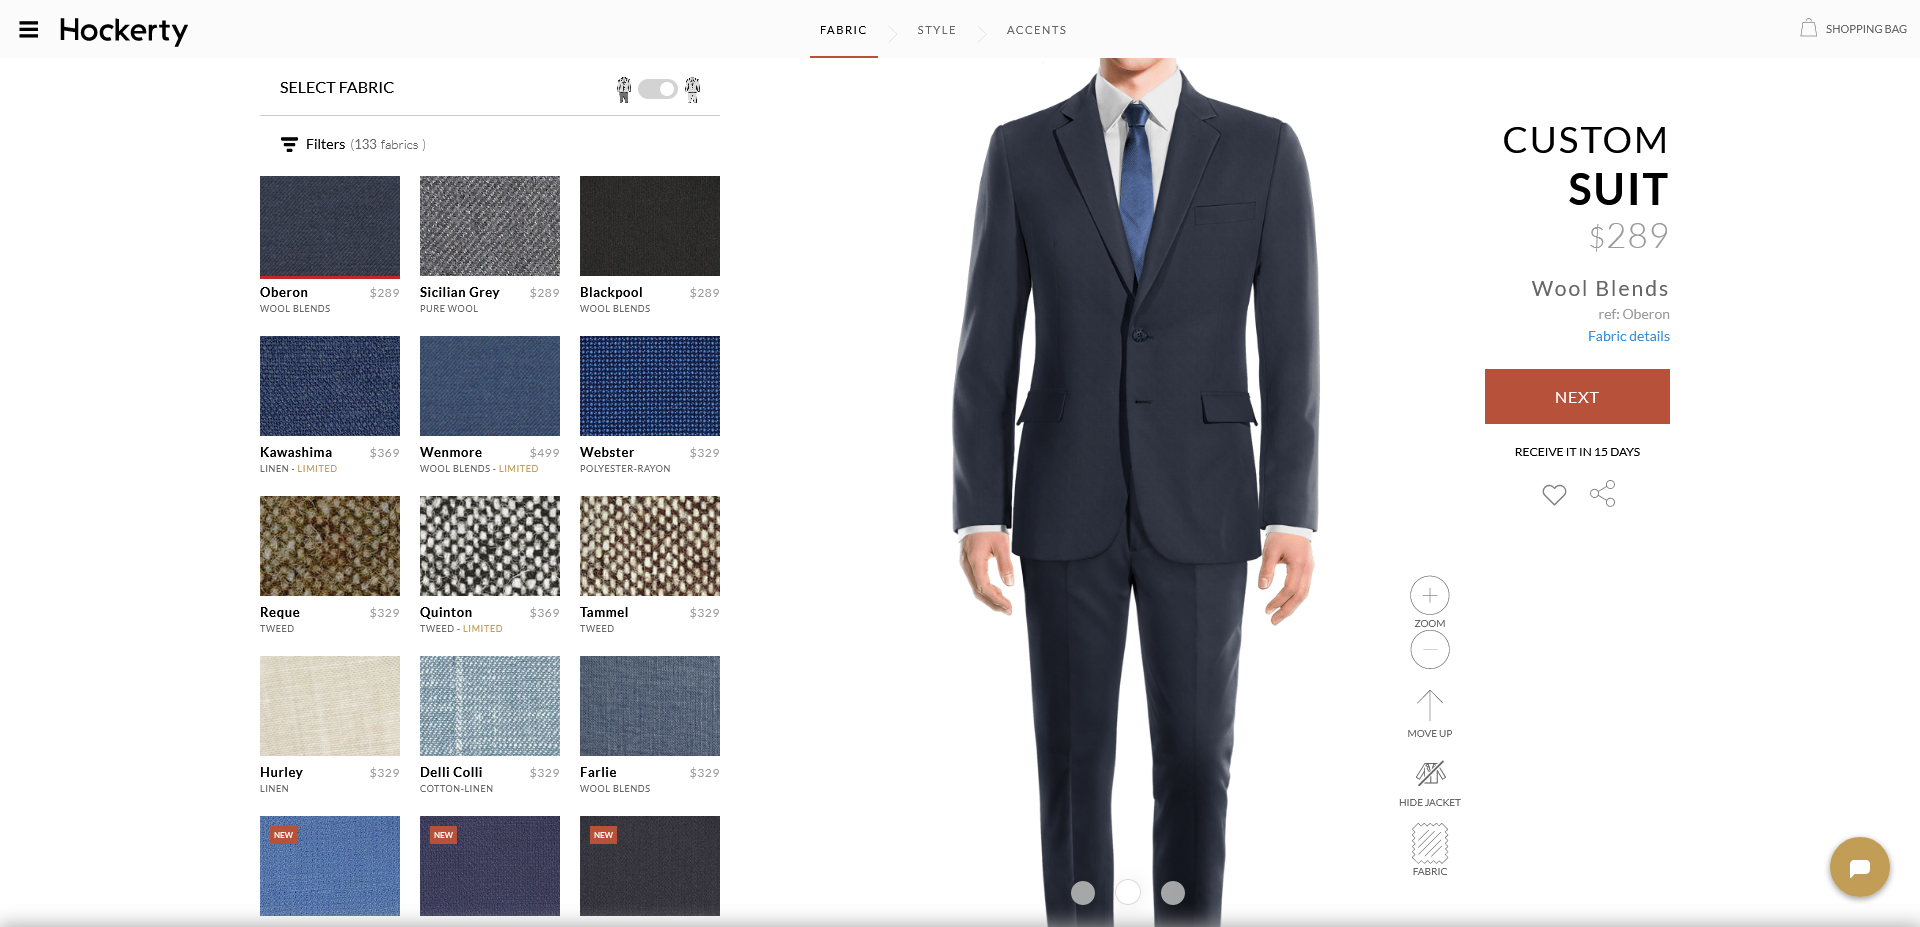 oberon: navy suit fabric from Hockerty